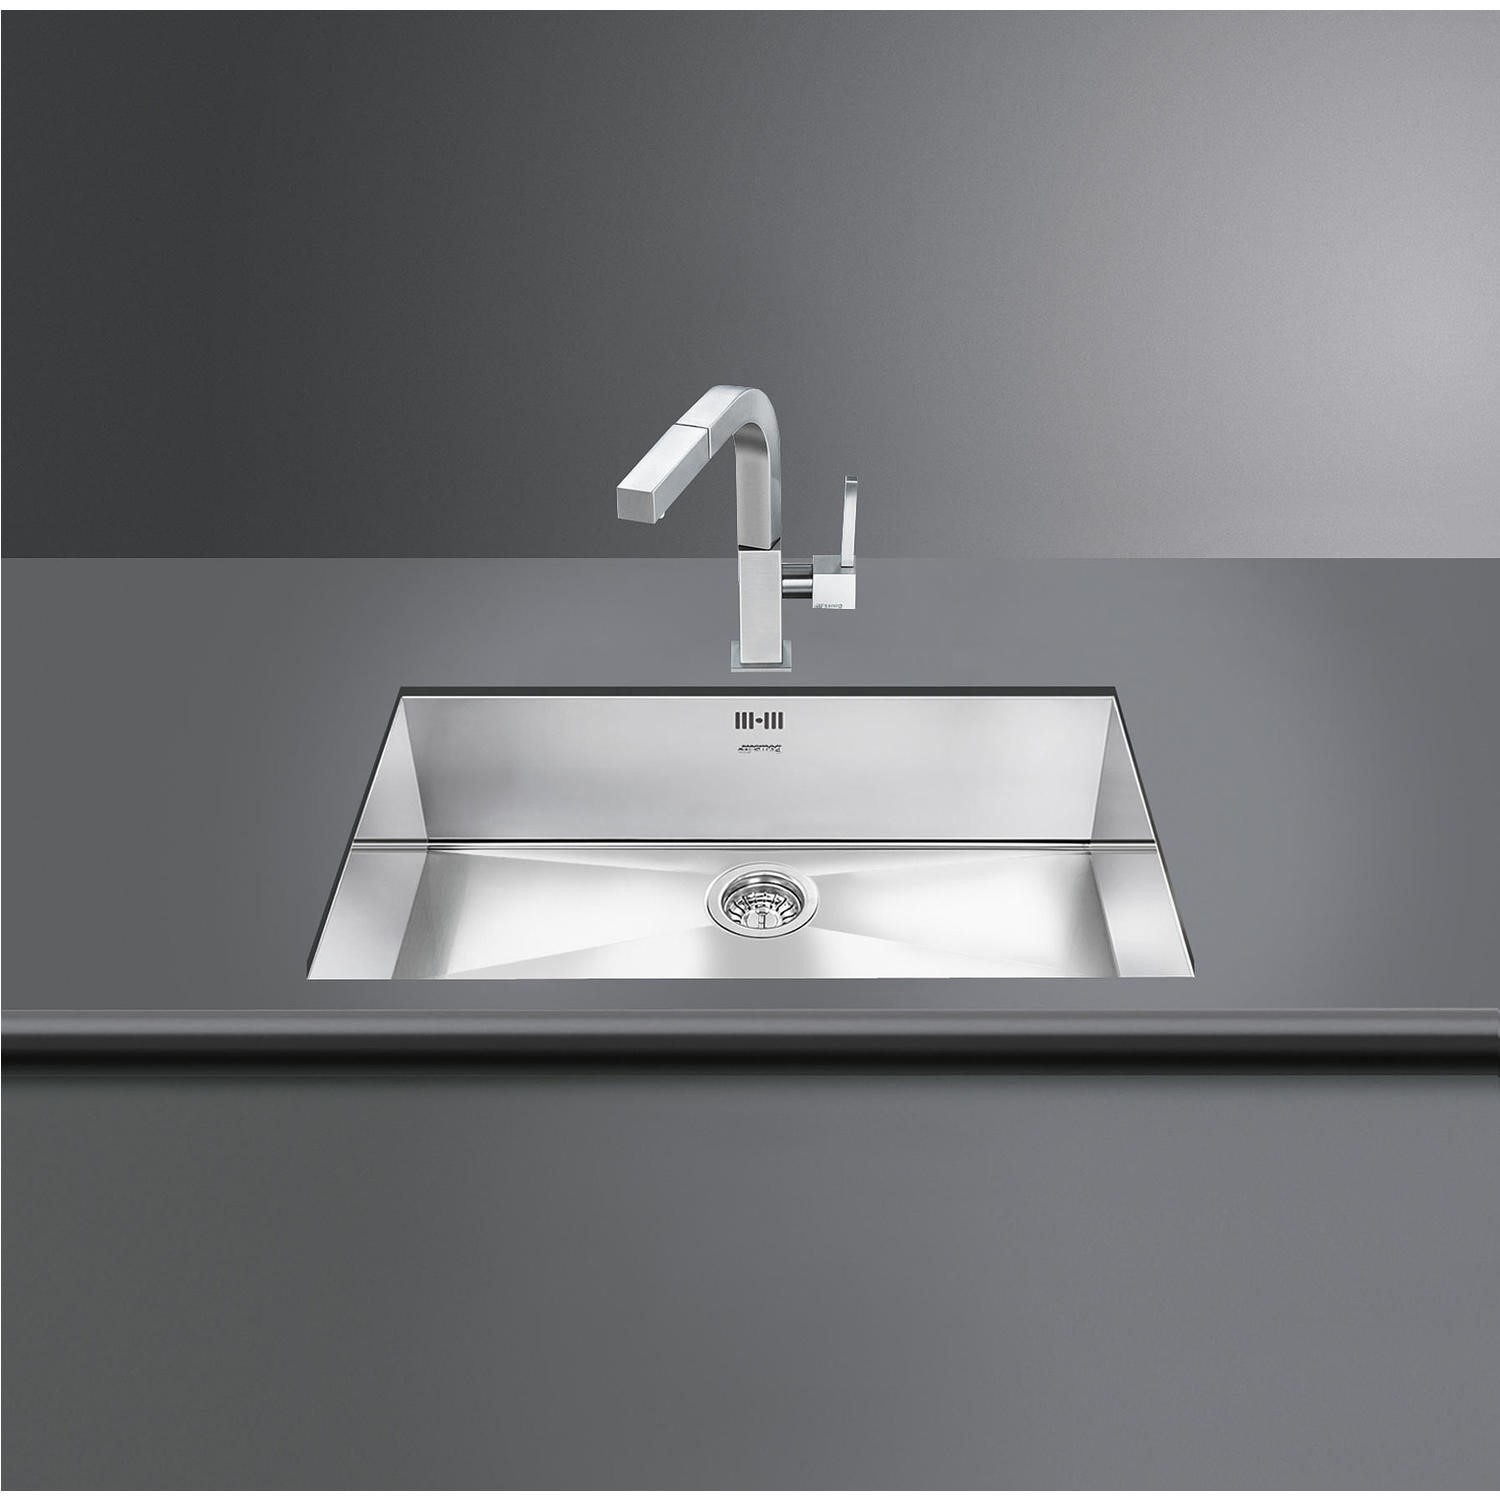 smeg vstq72 2 quadra single rectangular undermount sink appliances rh appliancesdirect co uk smeg kitchen sinks australia smeg kitchen sink prices